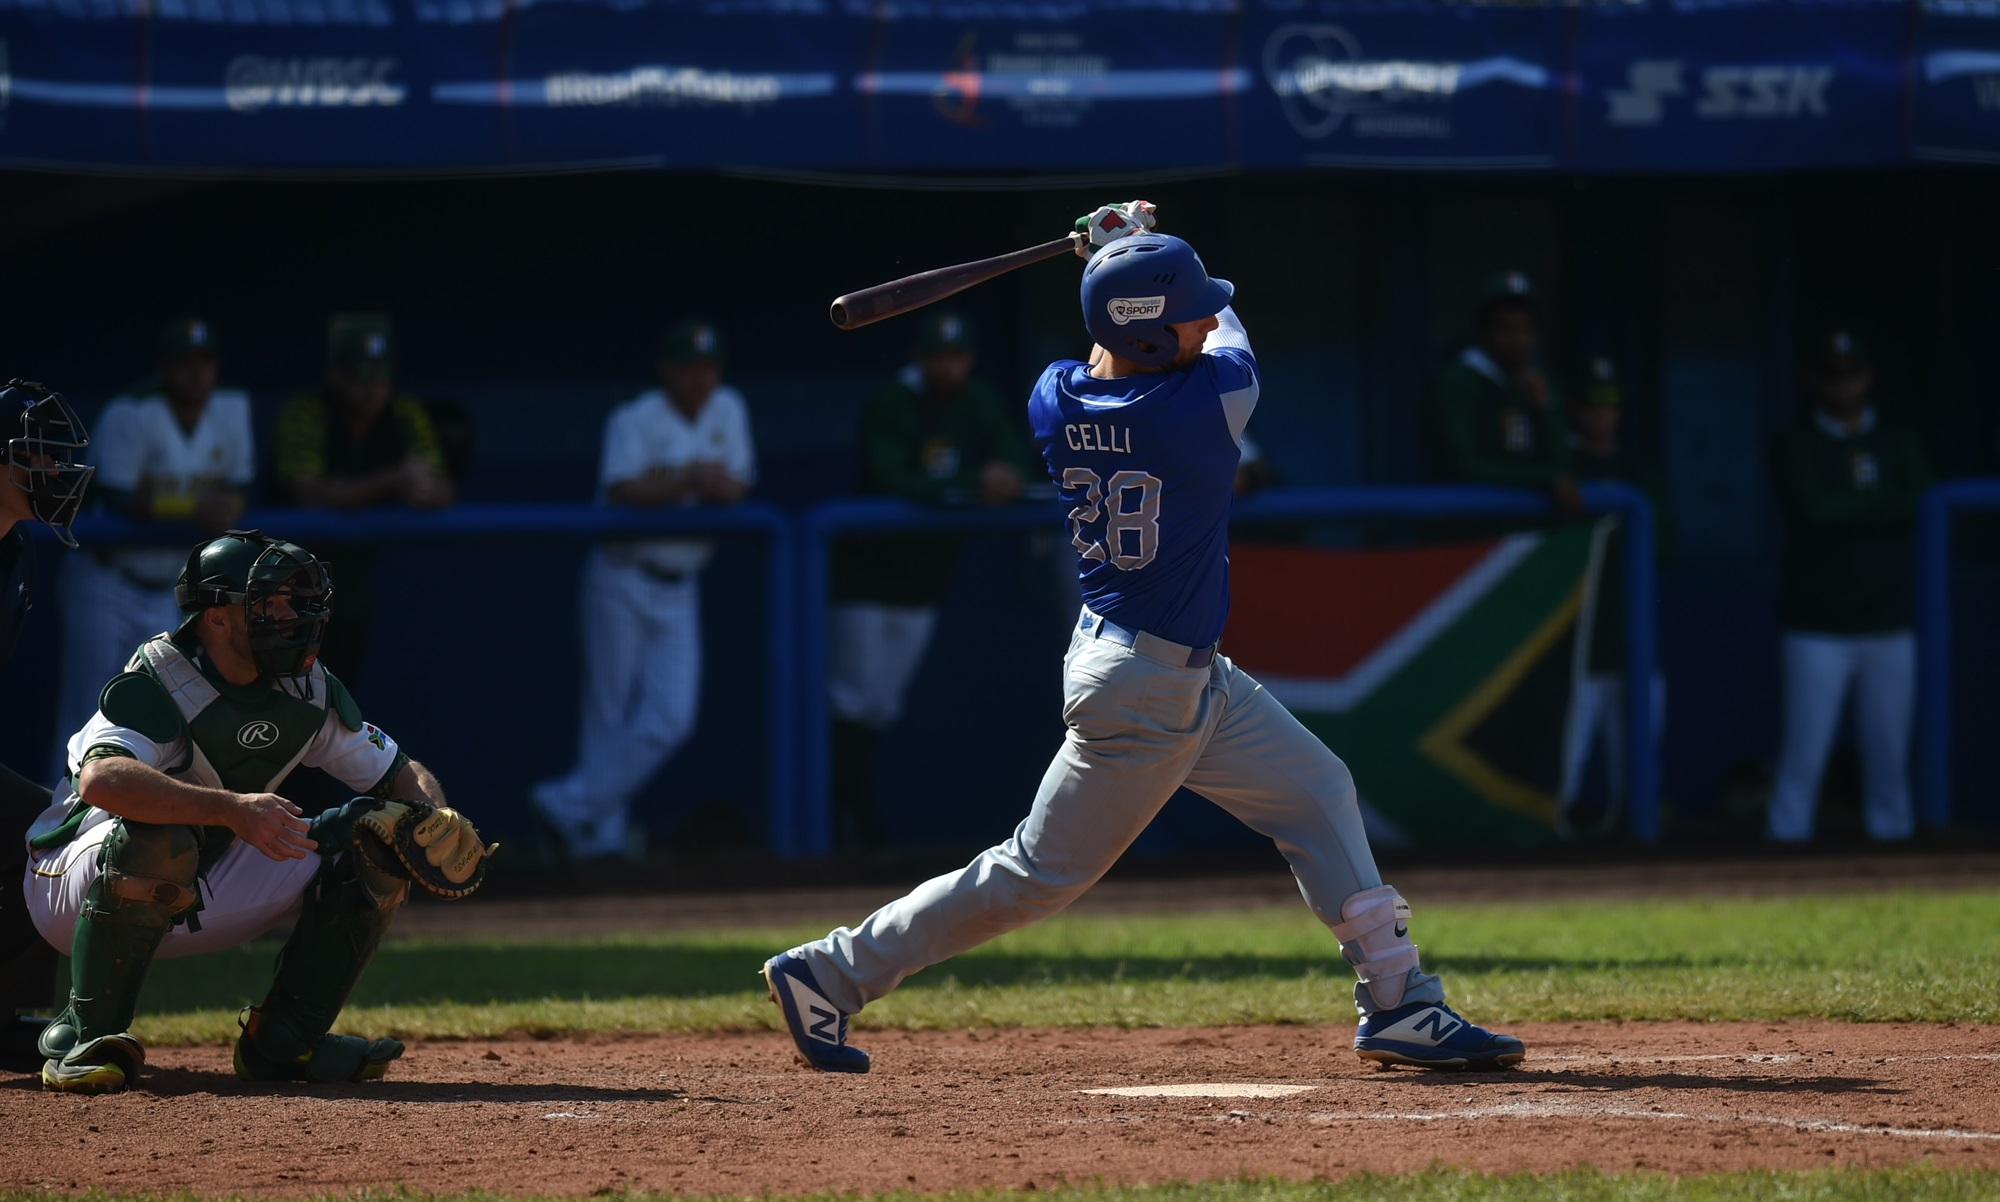 Federico Celli hit a home run